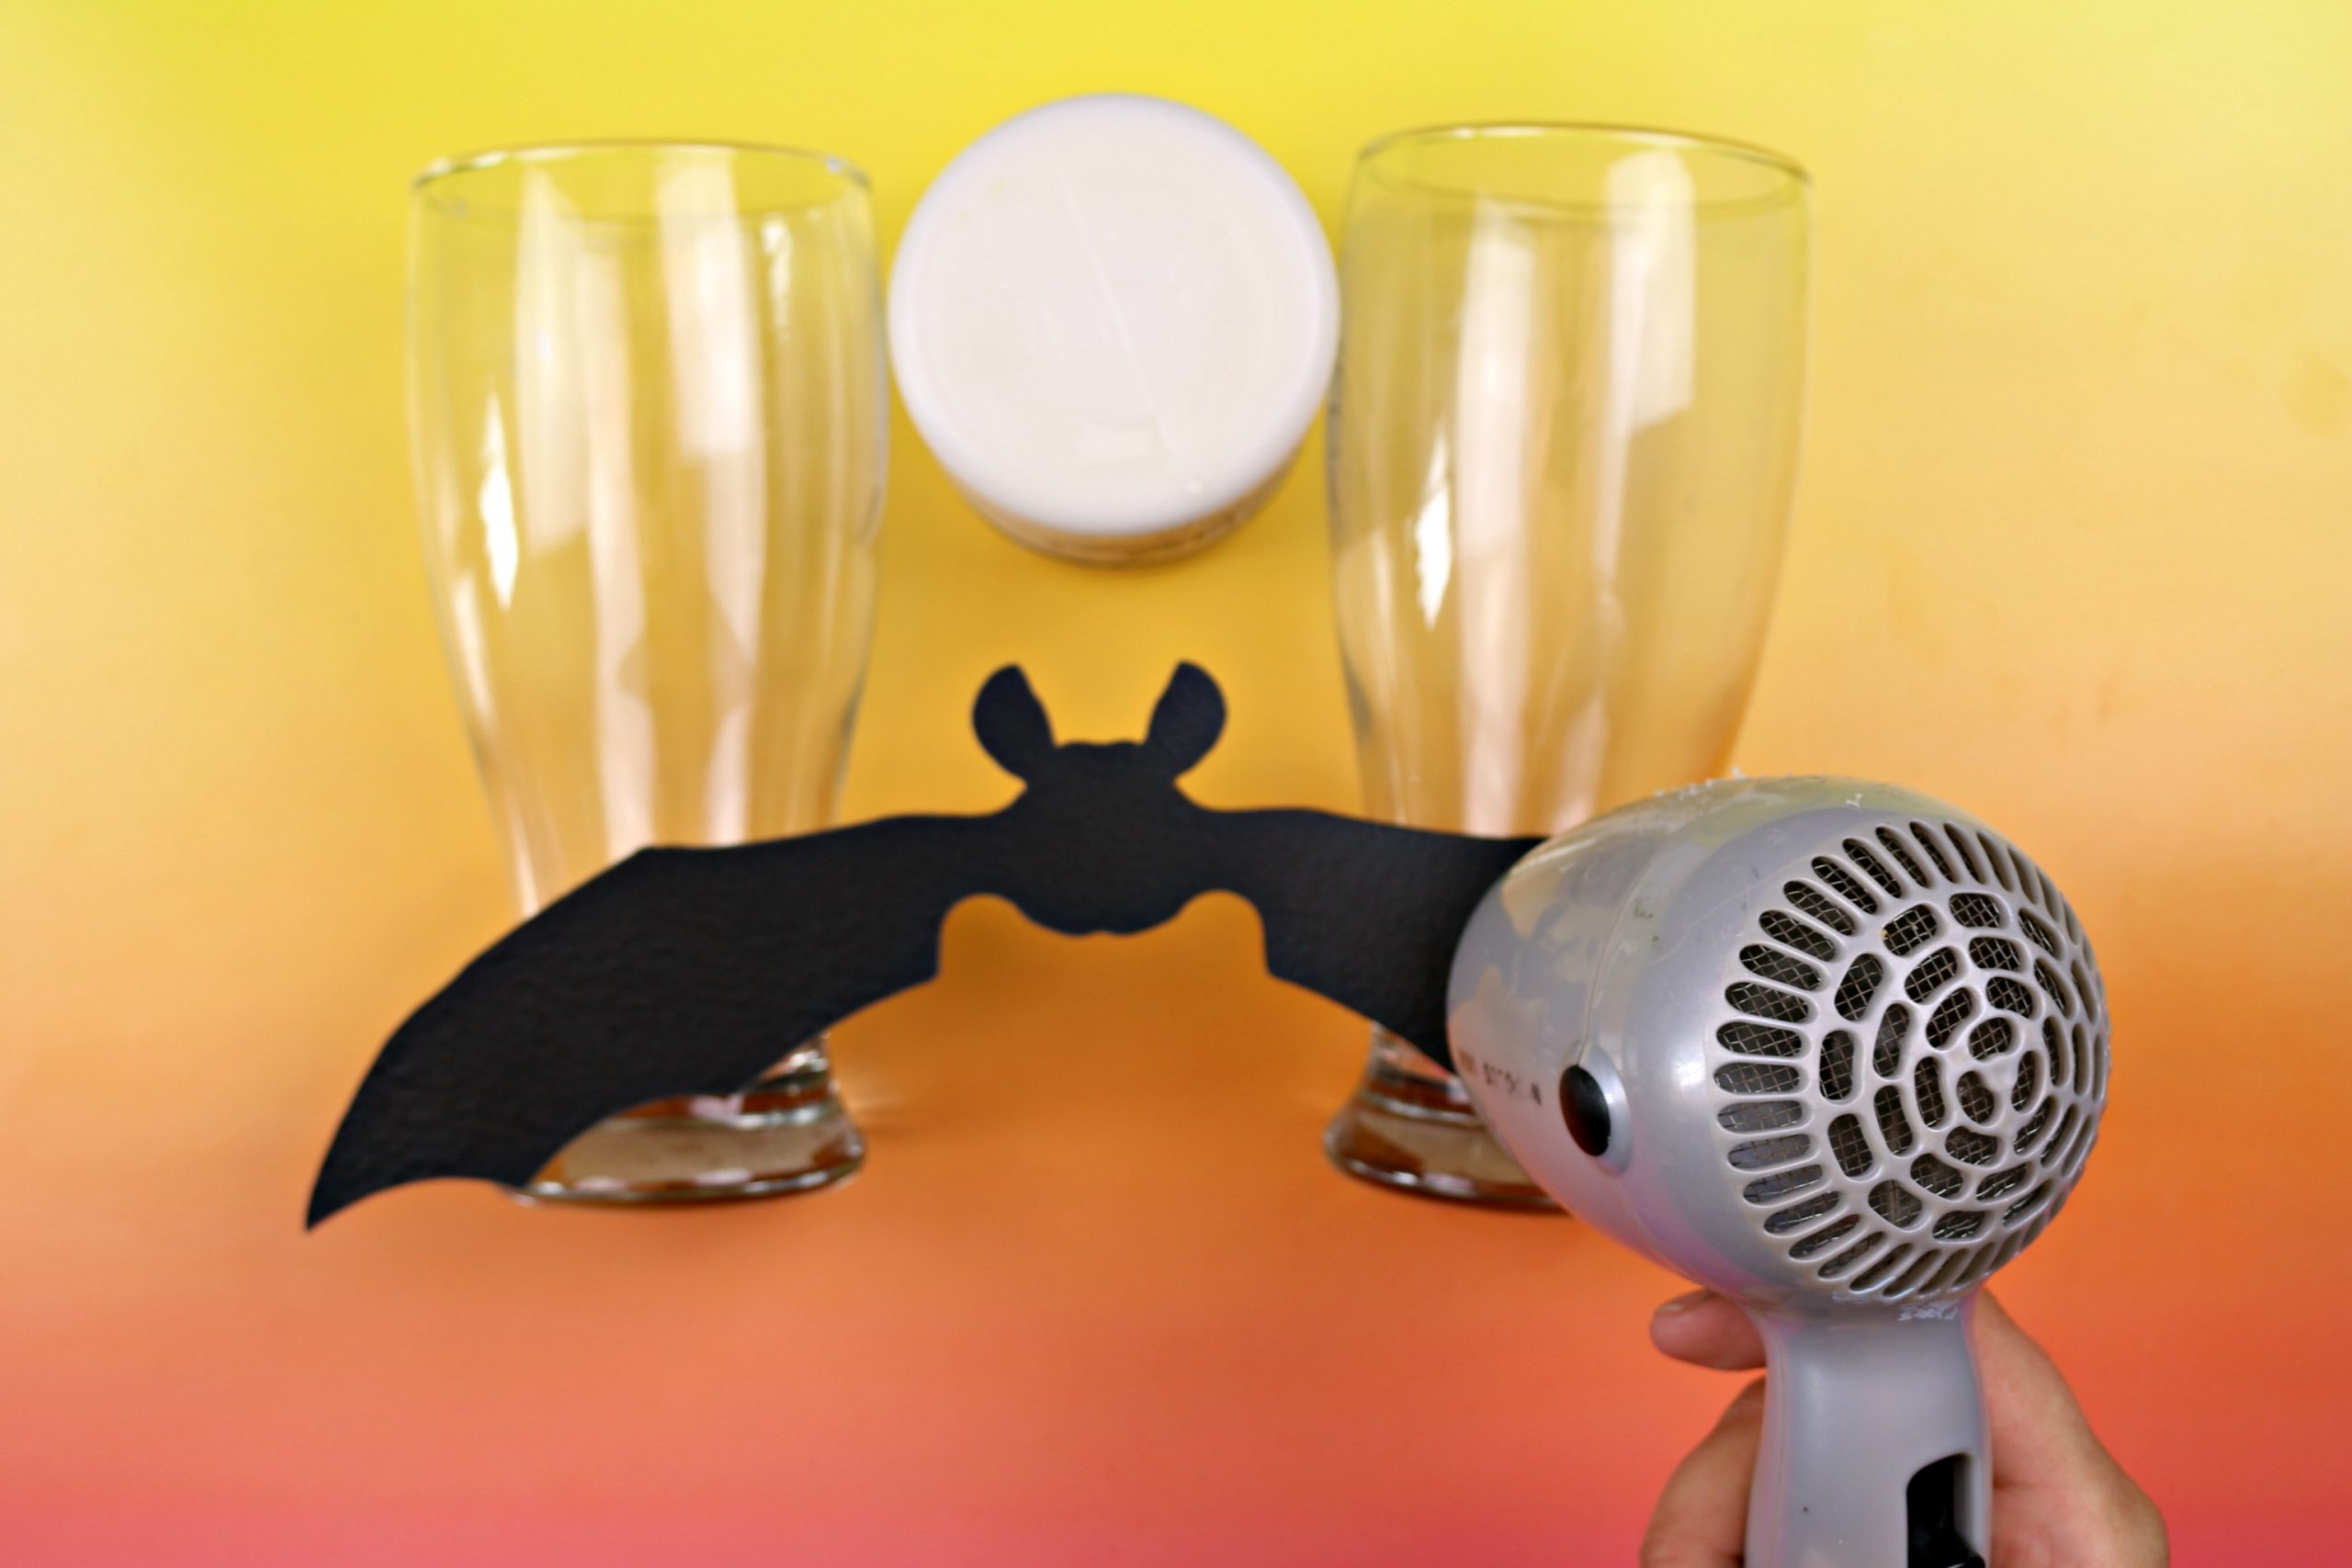 black bat shape cut out of worbla plastic glasses and hair dryer